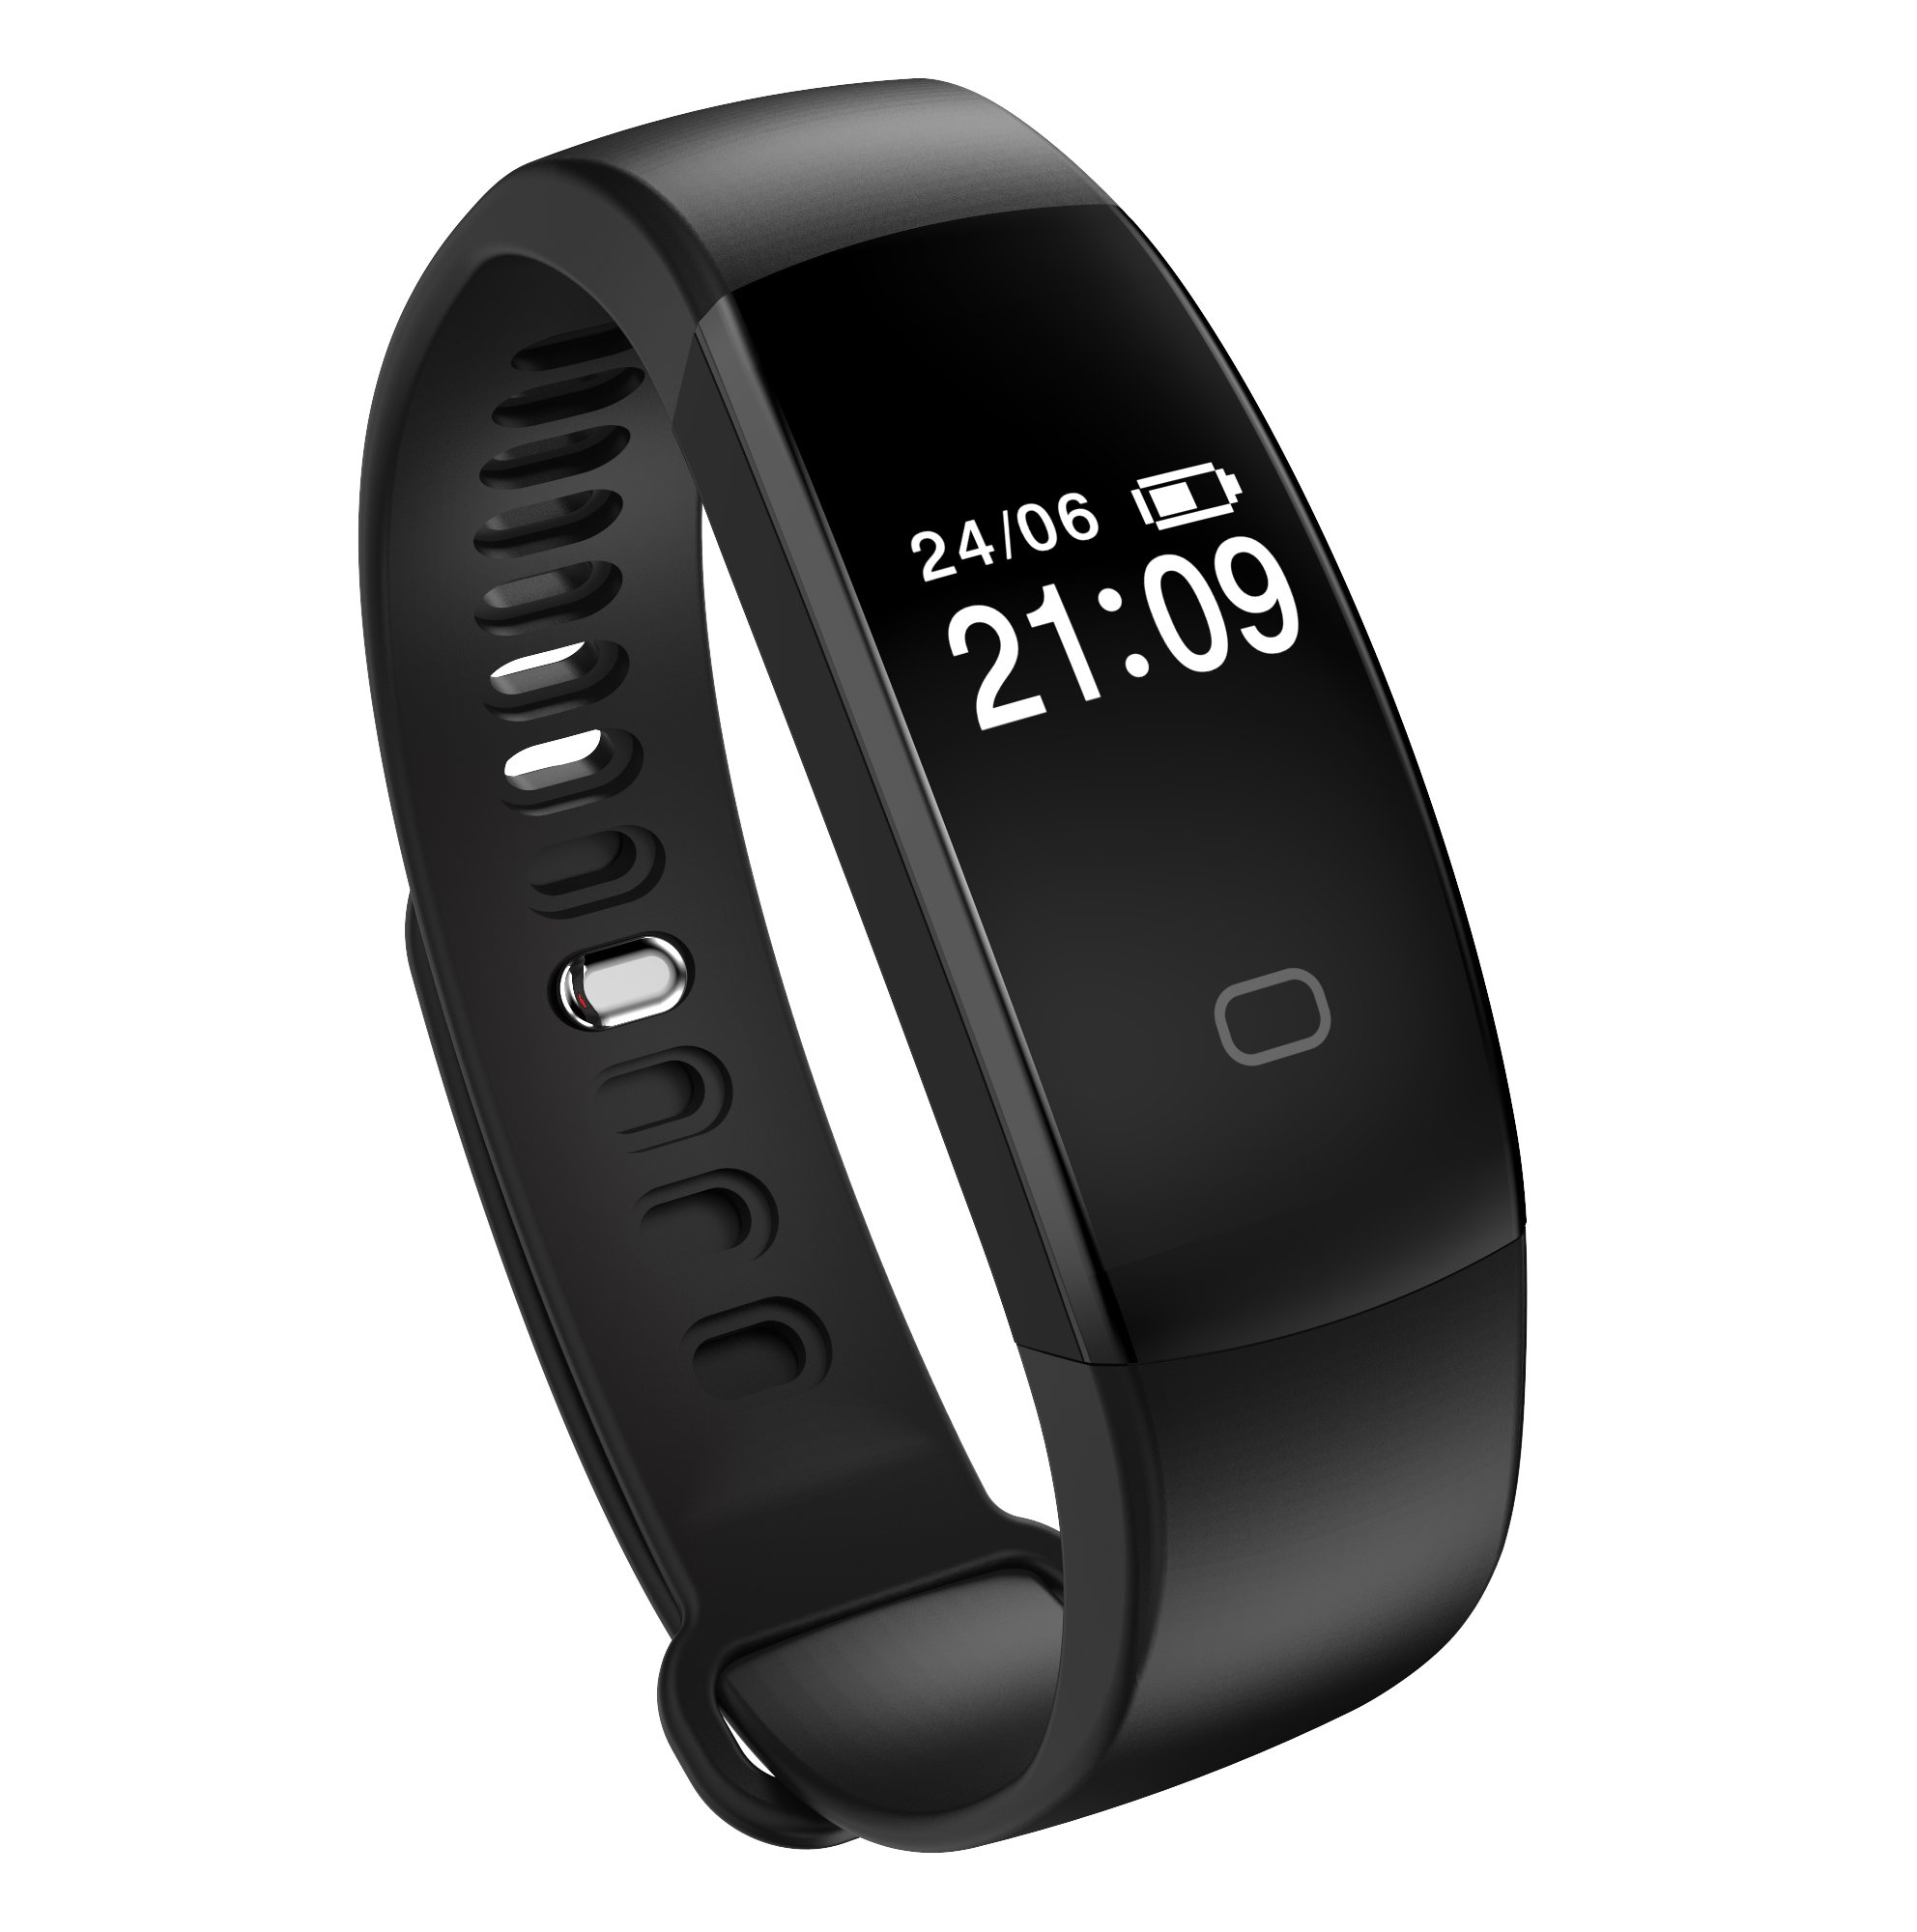 71pLg1u6uiL - Fitness Tracker Heart Rate Monitor Pedometer Smart Bracelet Bluetooth 4.0 Smart Fitness Band and Activity Tracker Smartwatch